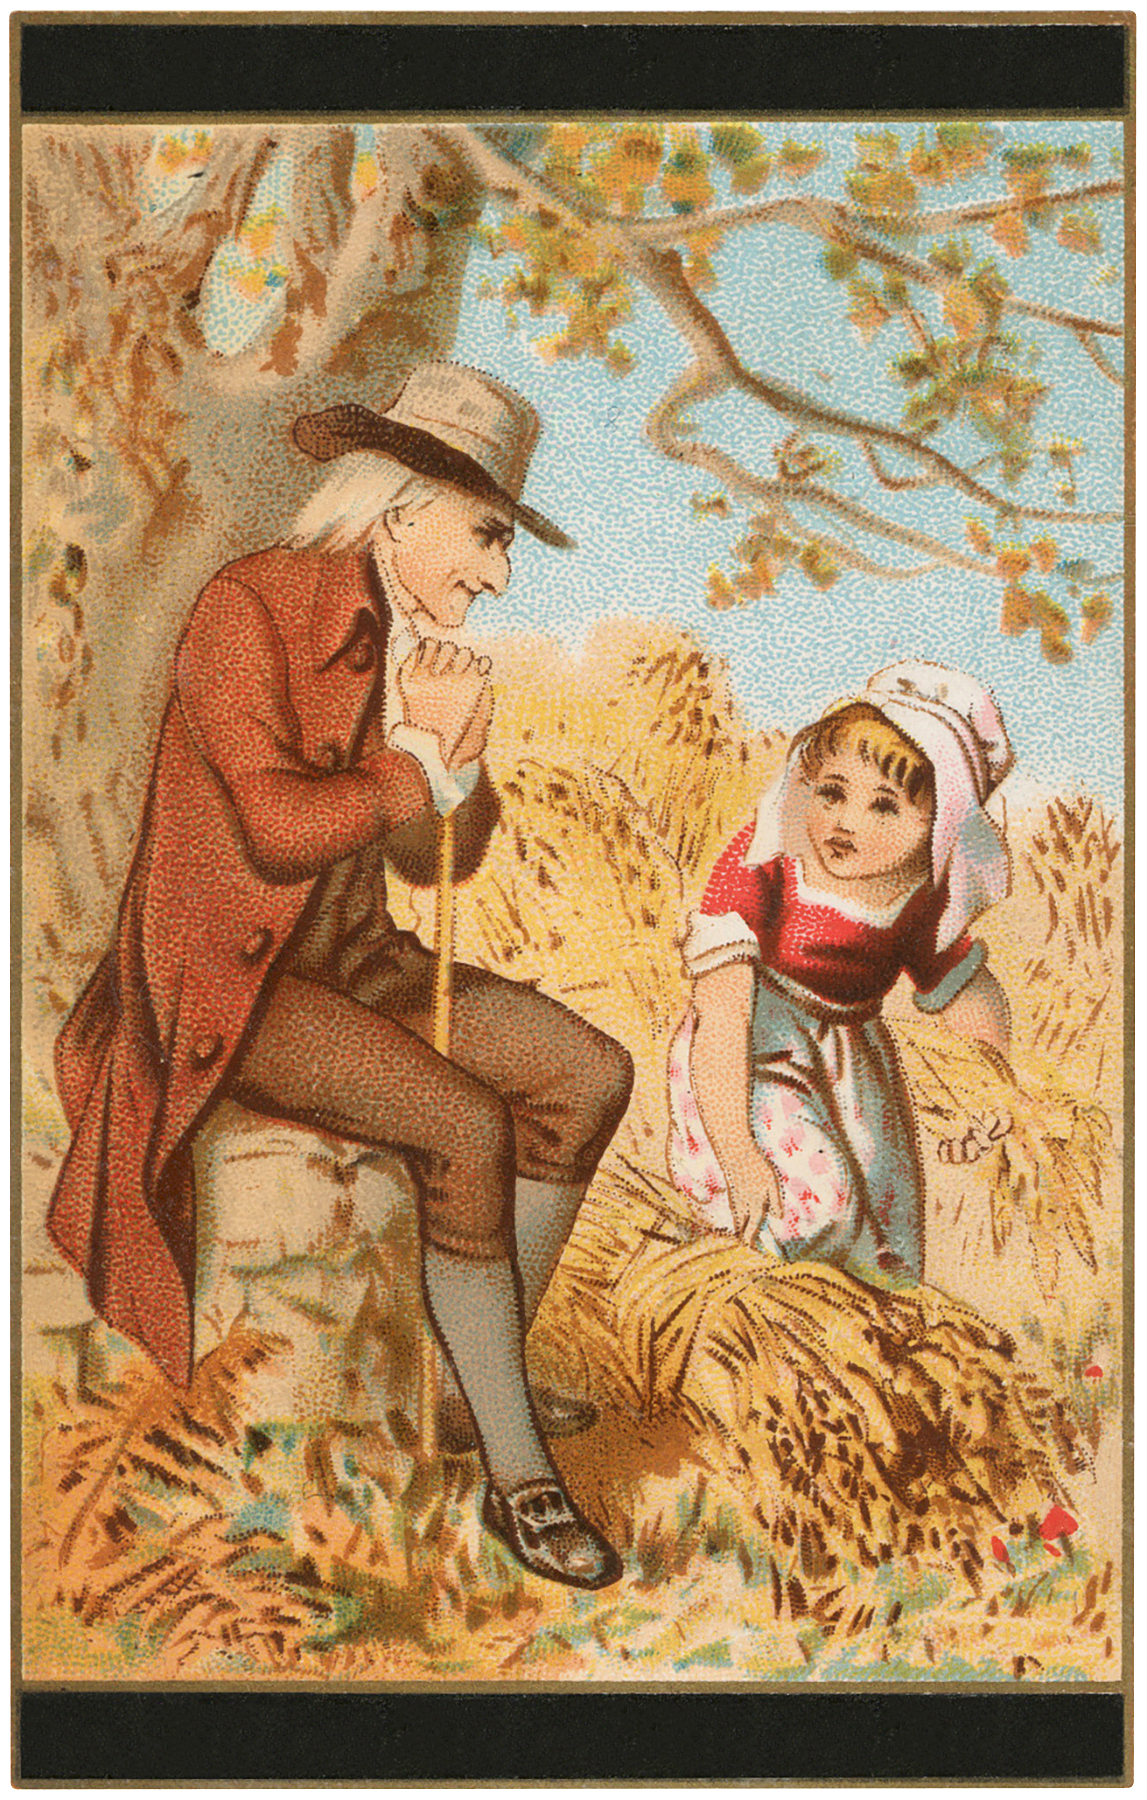 Vintage Grandpa with Girl Image